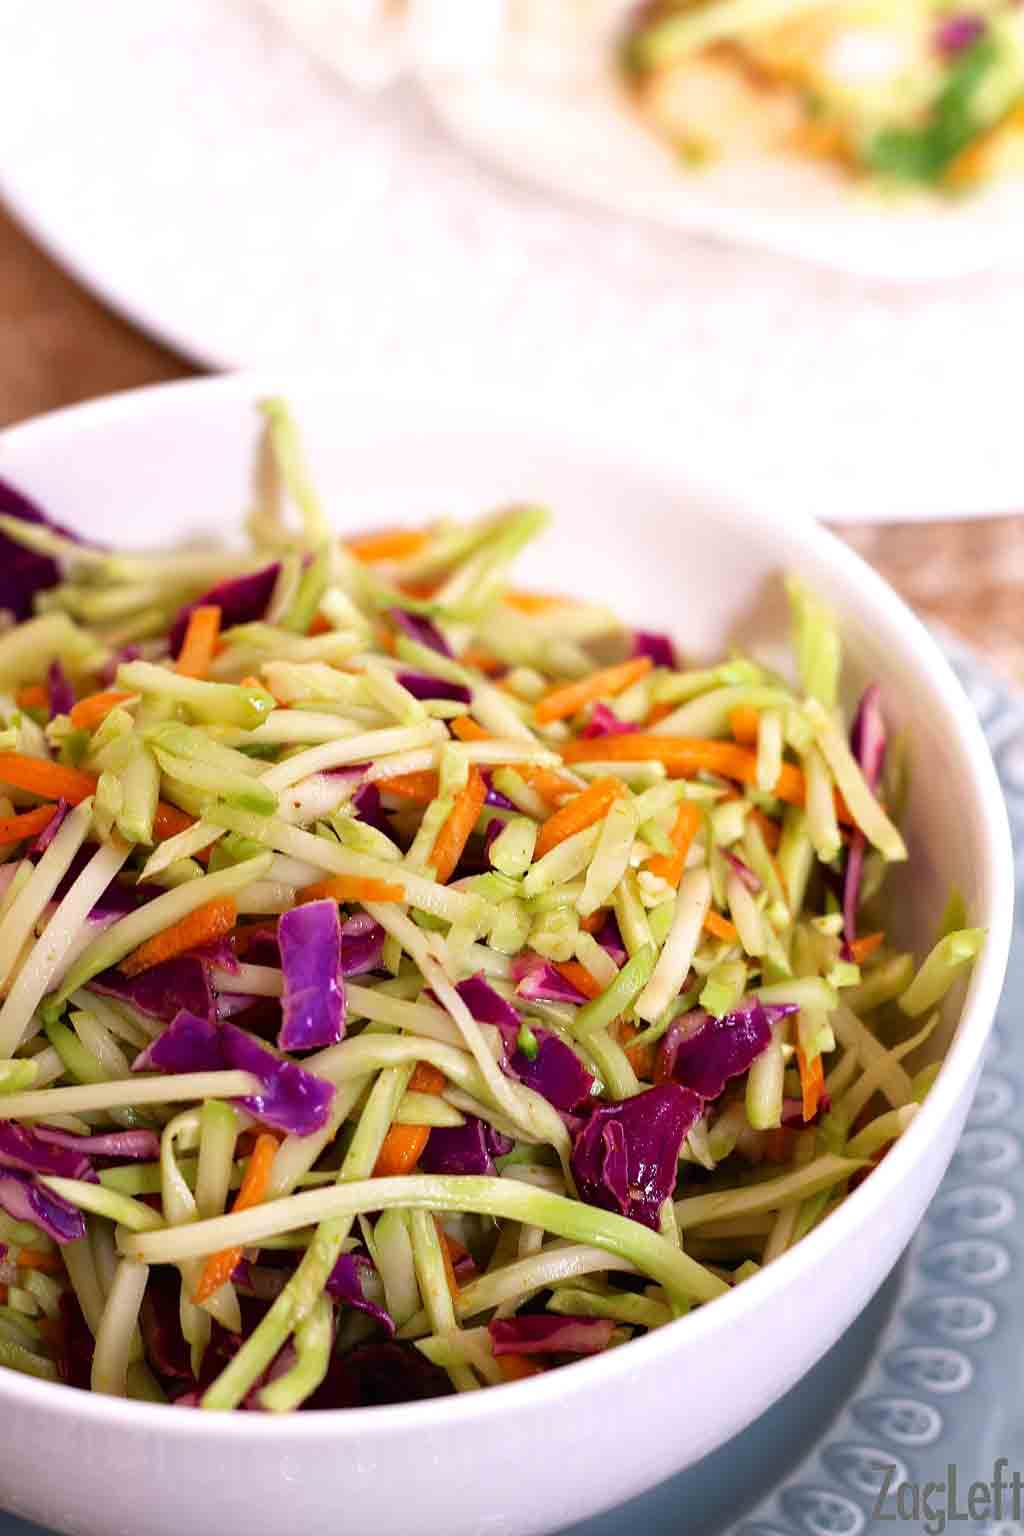 A closeup of a bowl of broccoli slaw